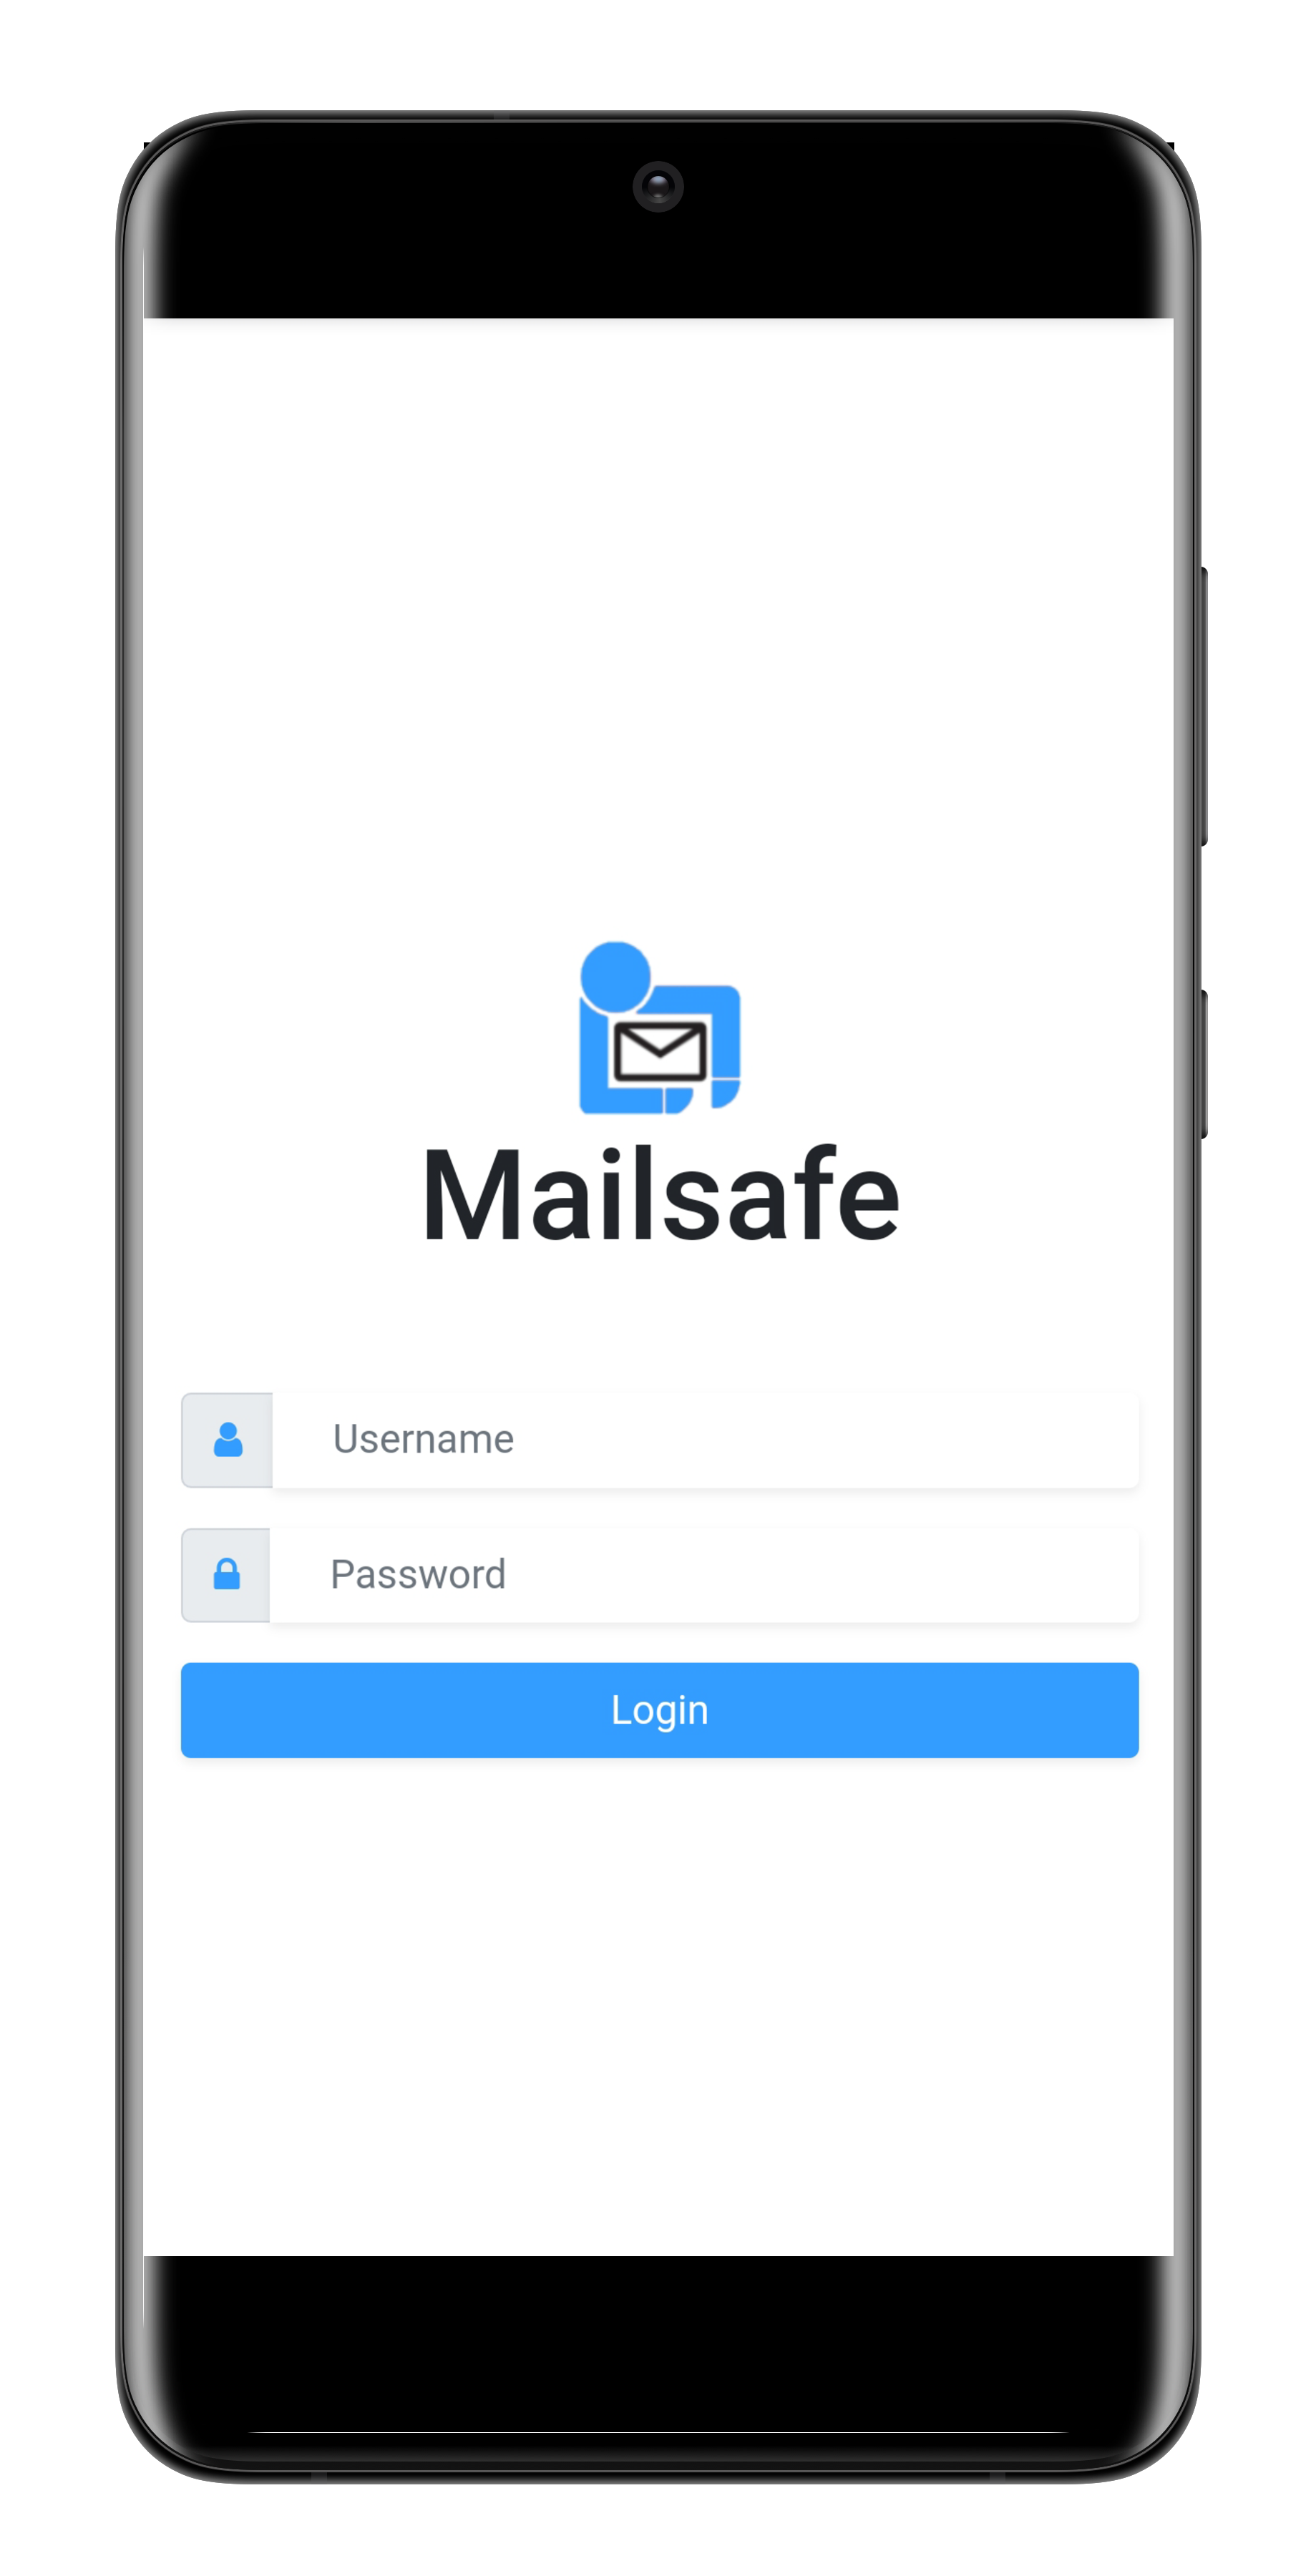 Mailsafe Web Log In